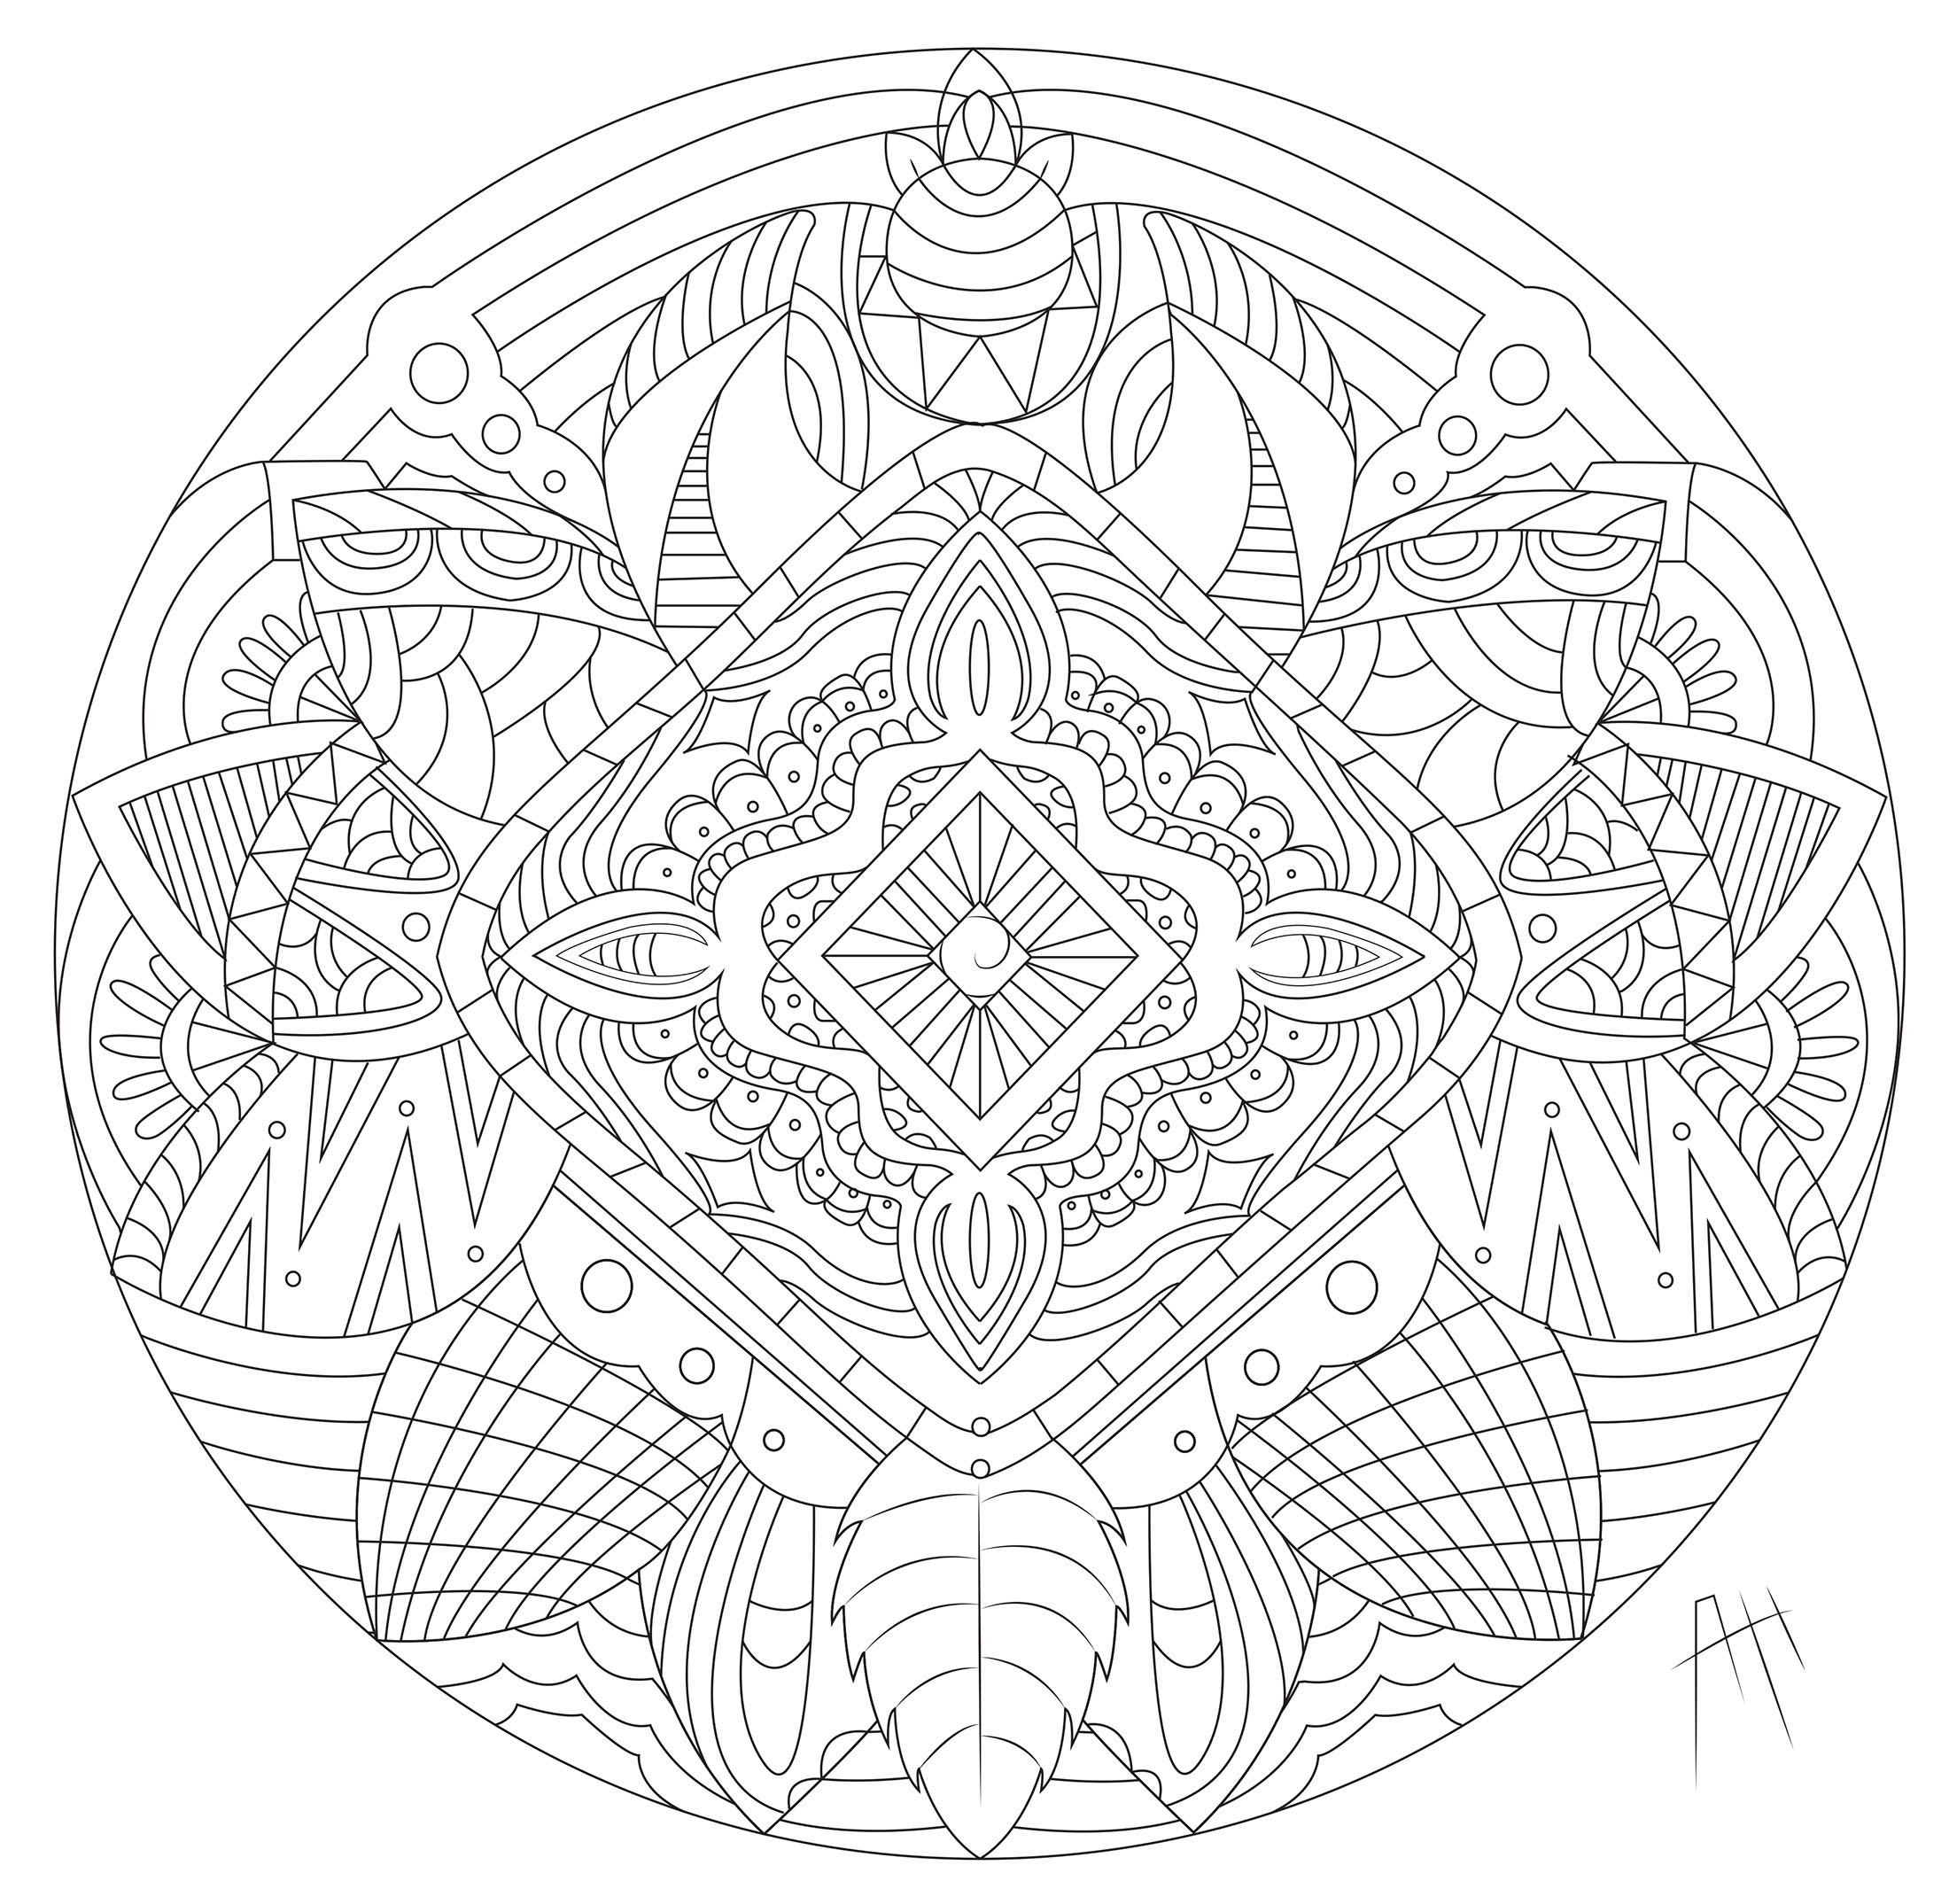 Leaves, Flowers and feathers in a beautiful Mandala